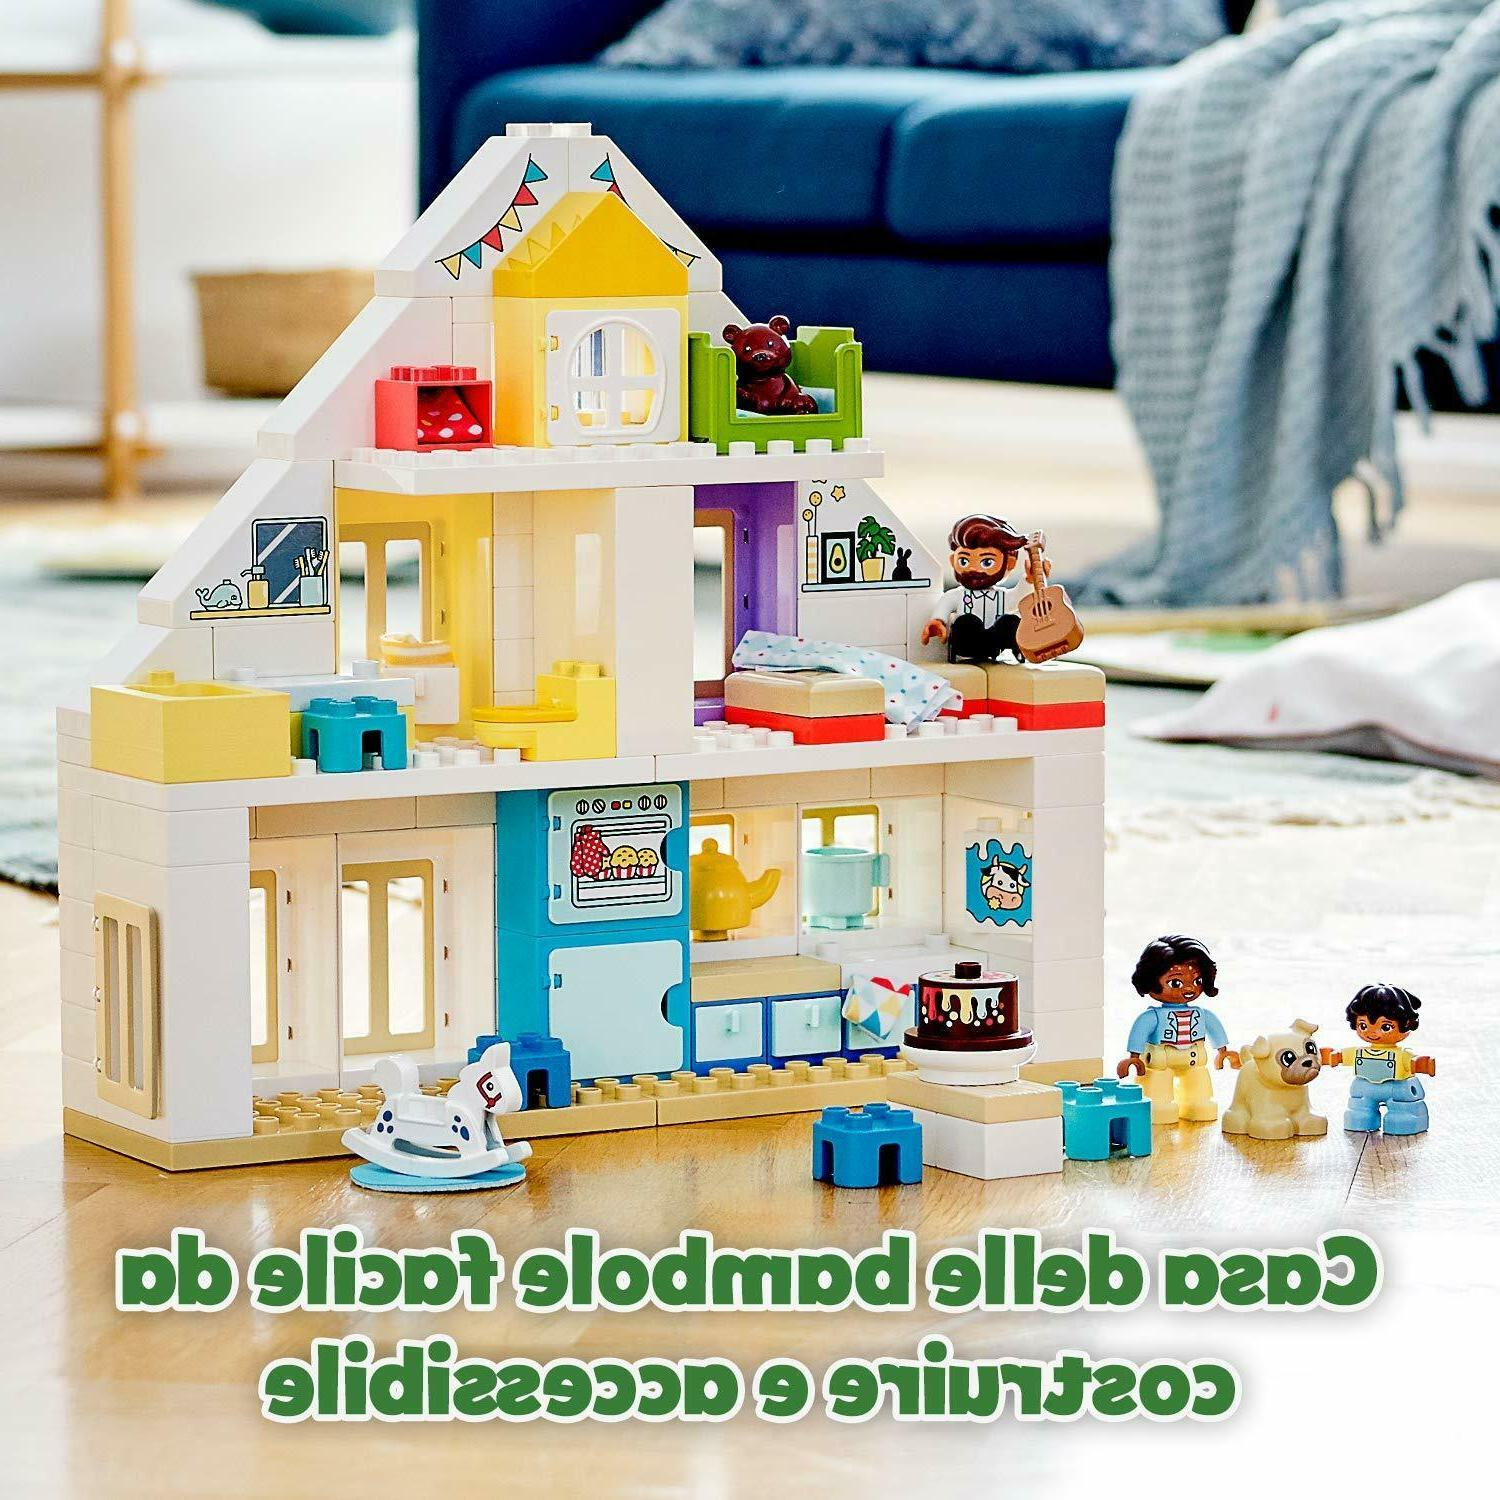 LEGO DUPLO Modular 3-in-1 Dolls House for 2+ Year Old